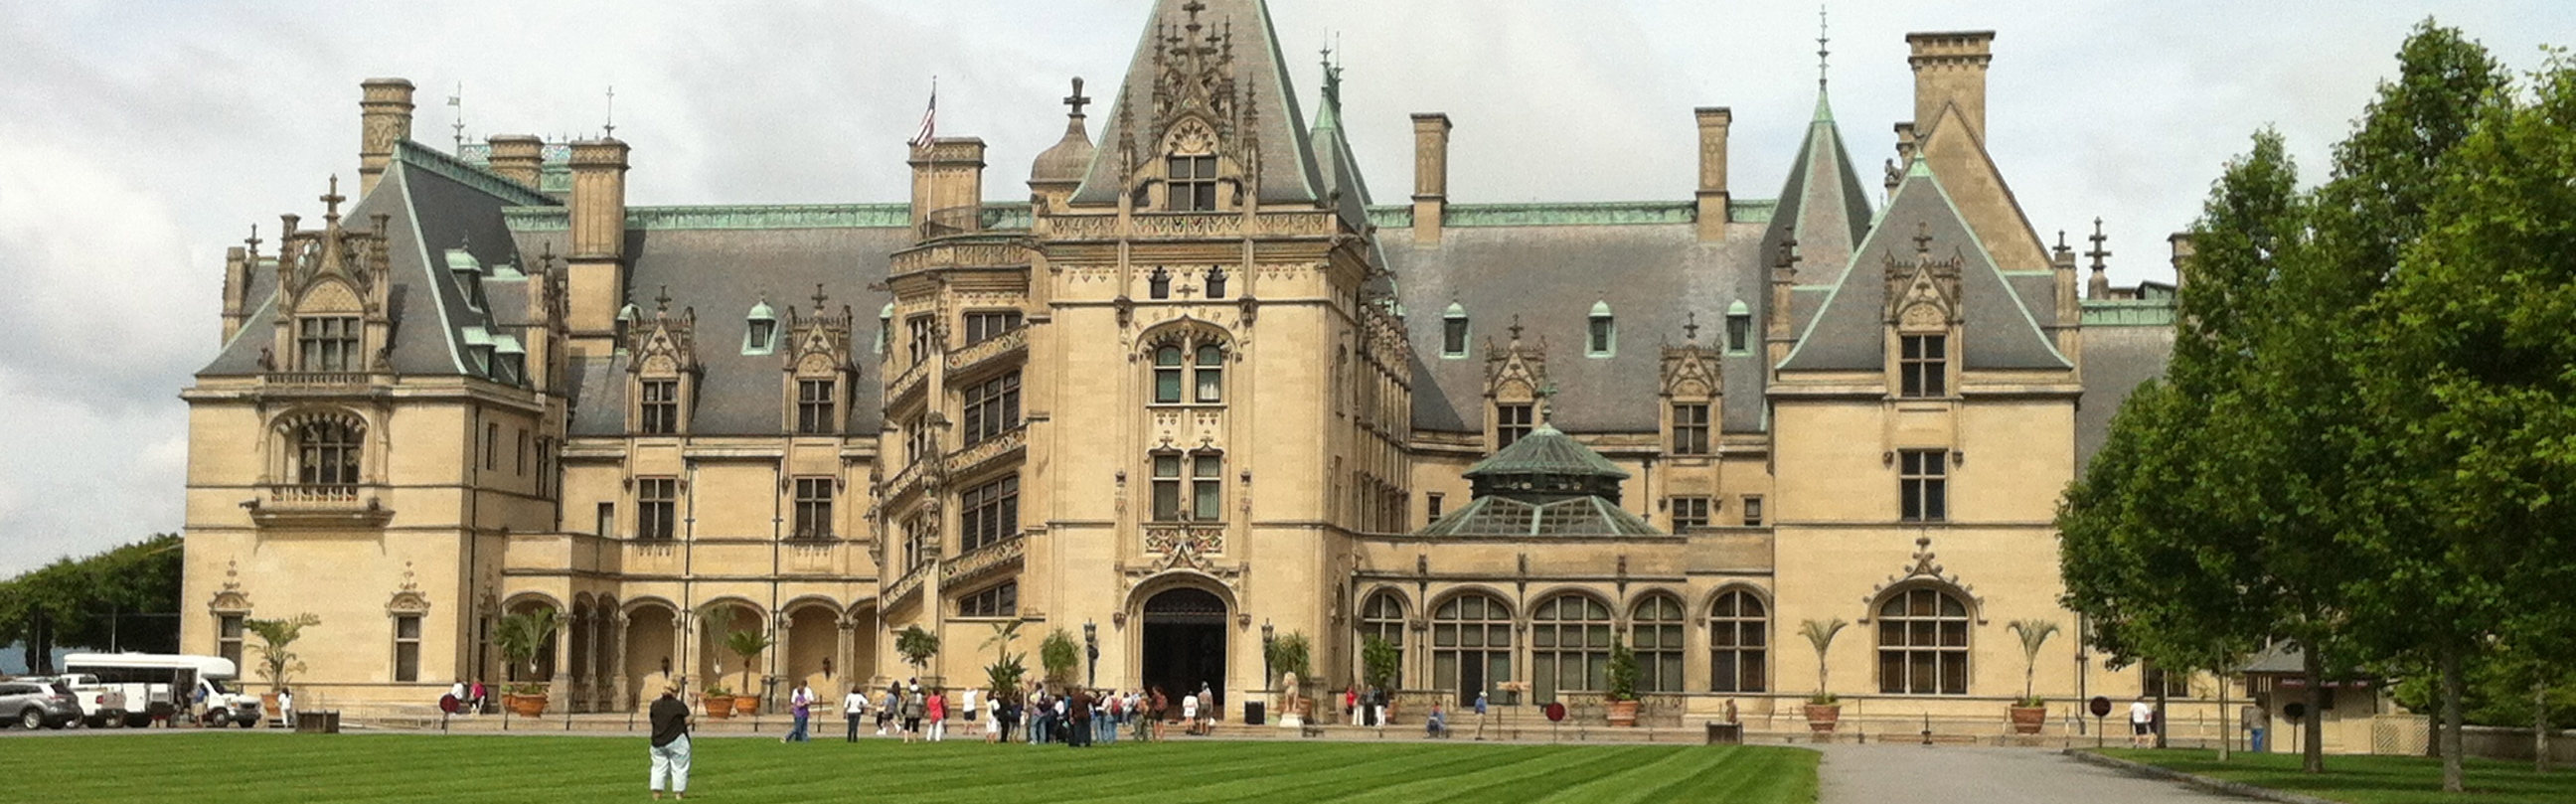 biltmore house - Biggest House In The World 2013